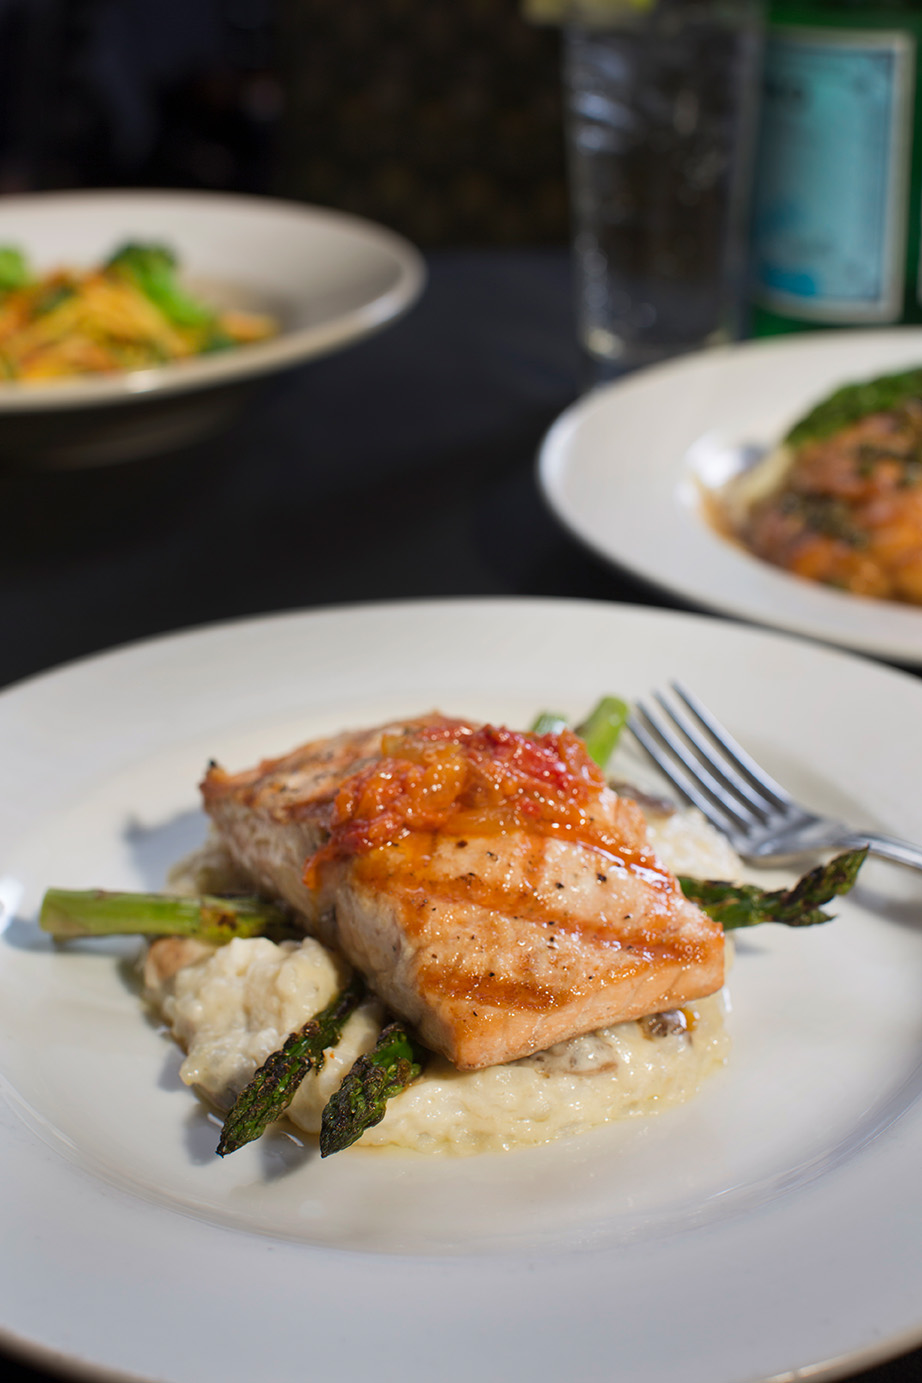 Midtown Cafe Food 2018; Photo credit: Sheri Oneal Photography